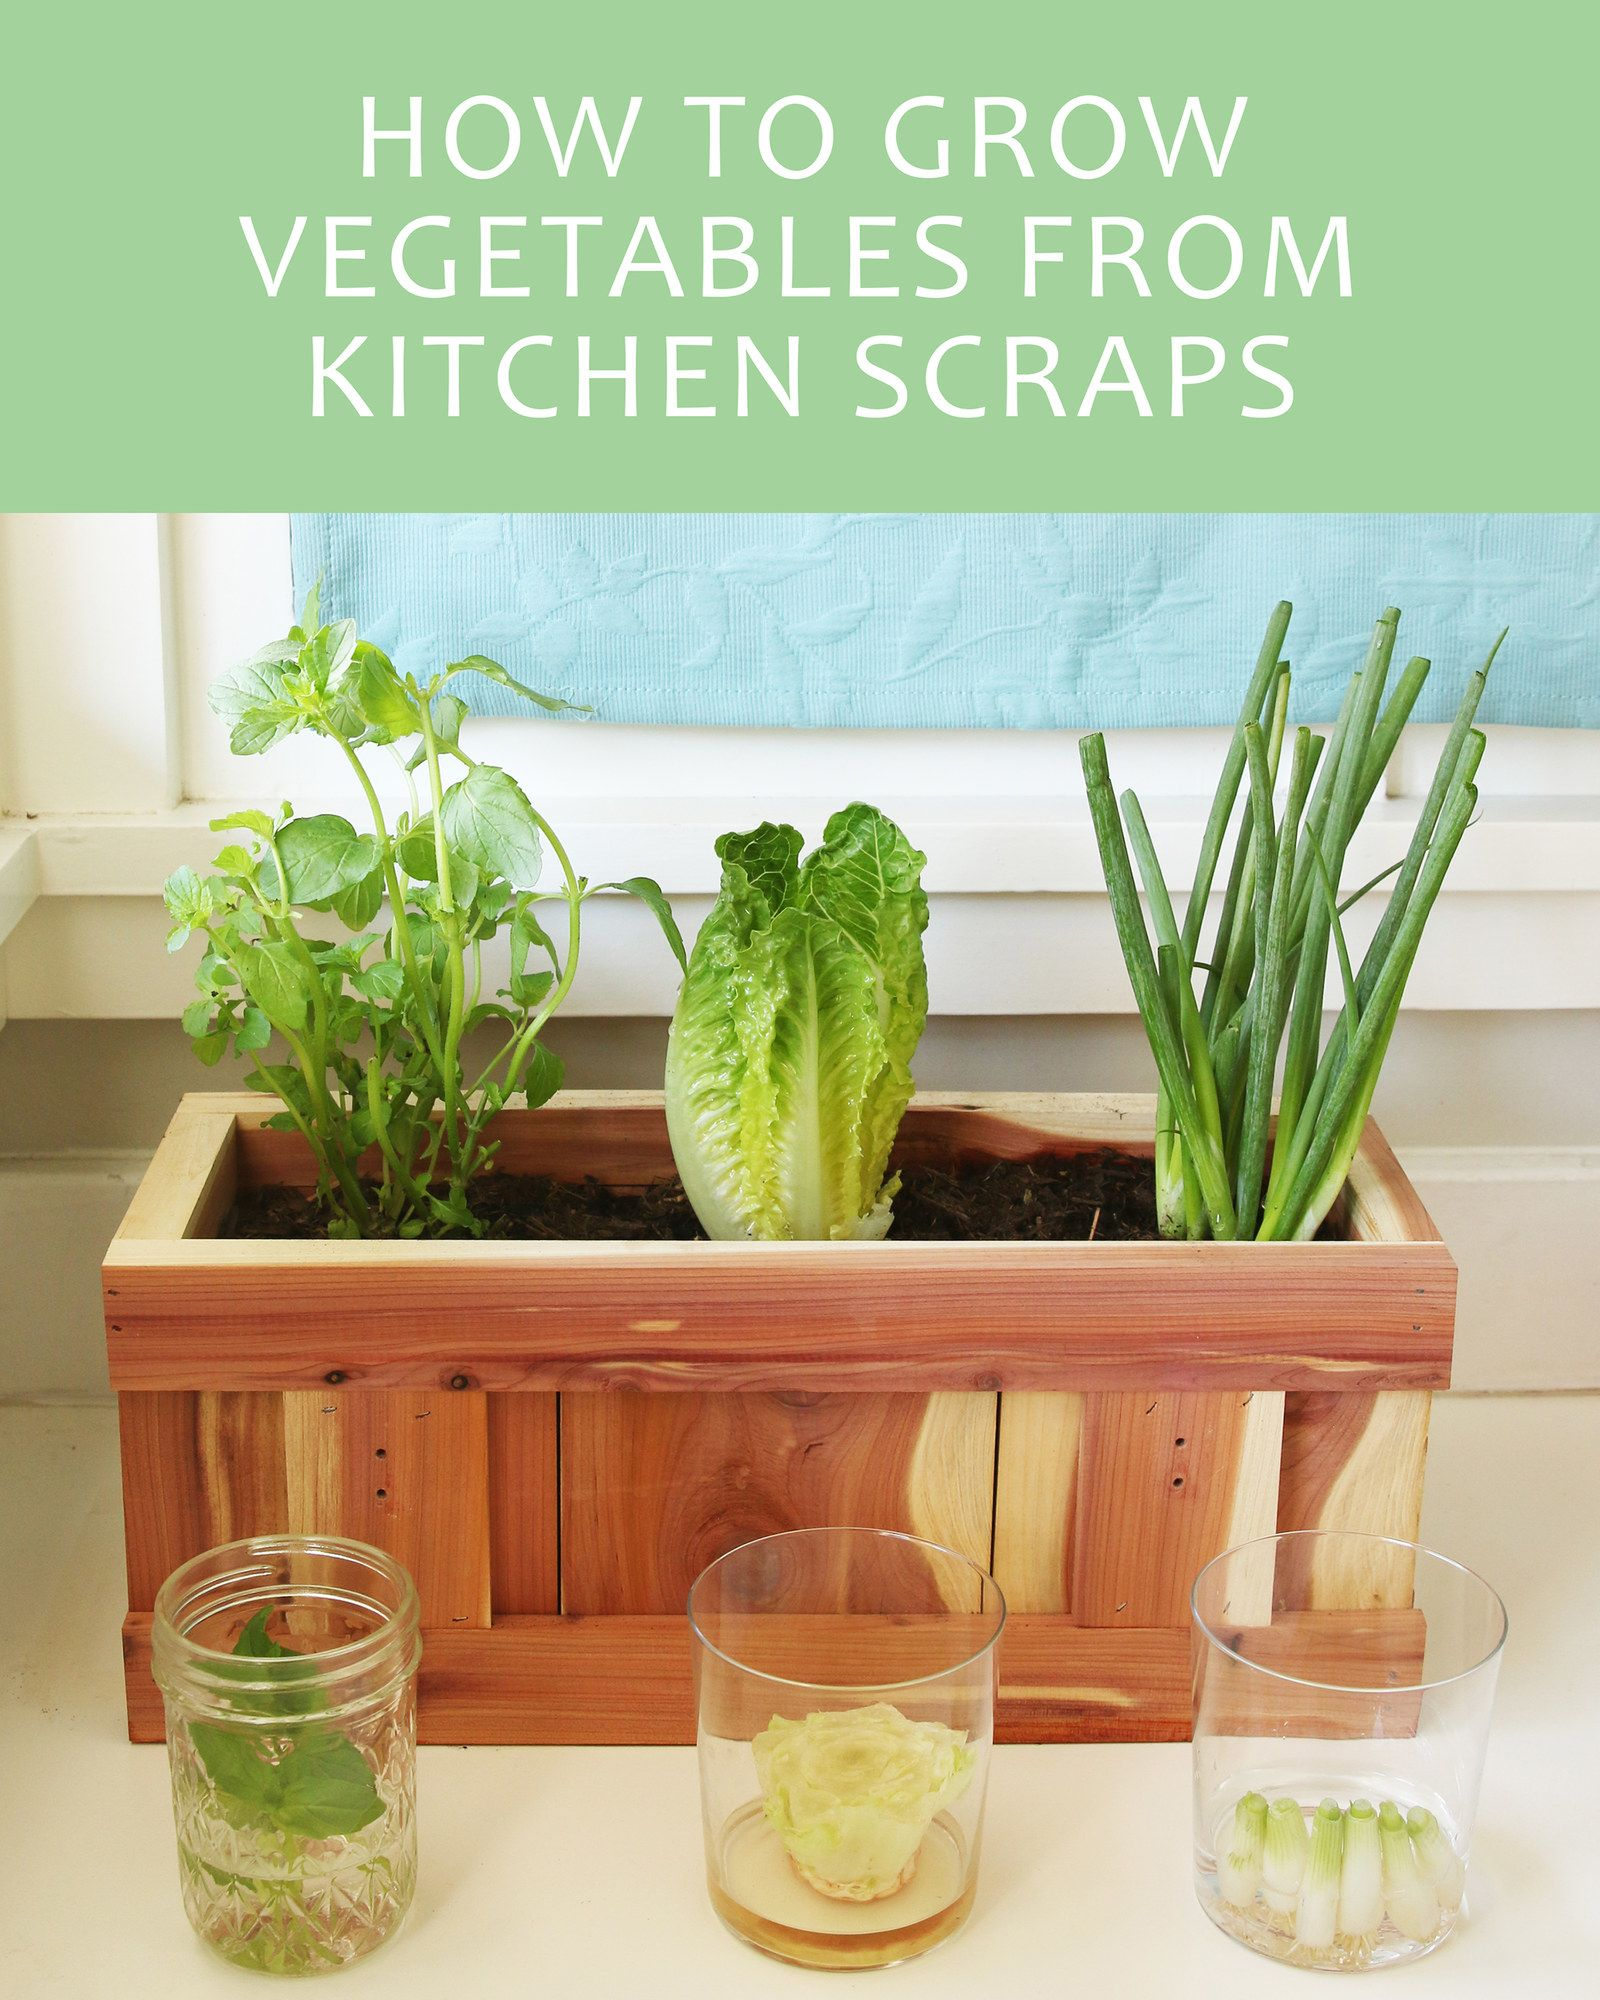 How To Turn Your Vegetable Scraps Into Vegetables Again 640 x 480